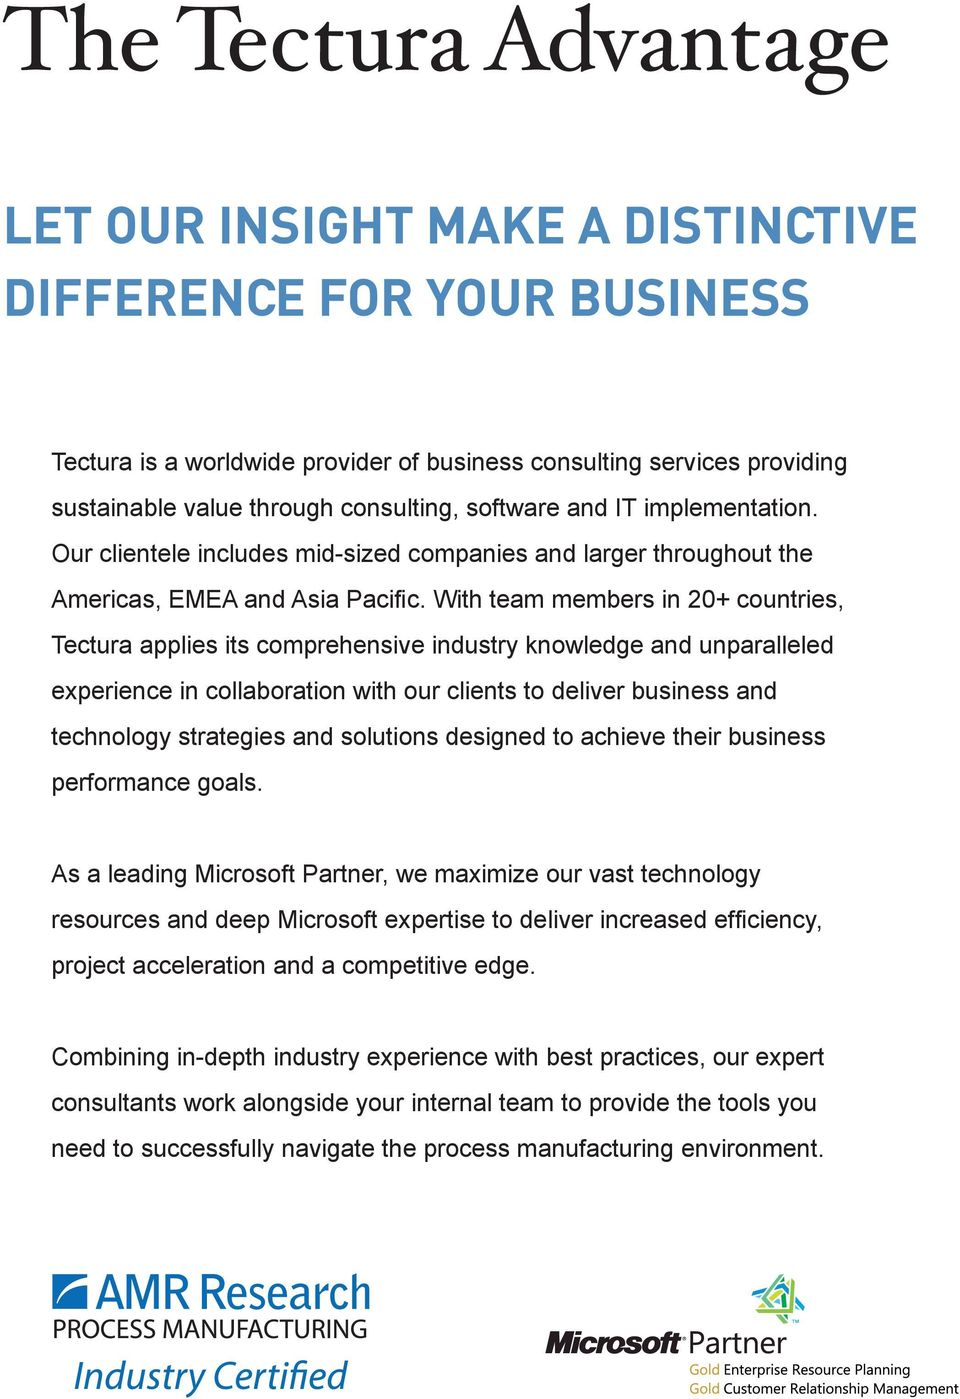 With team members in 20+ countries, Tectura applies its comprehensive industry knowledge and unparalleled experience in collaboration with our clients to deliver business and technology strategies